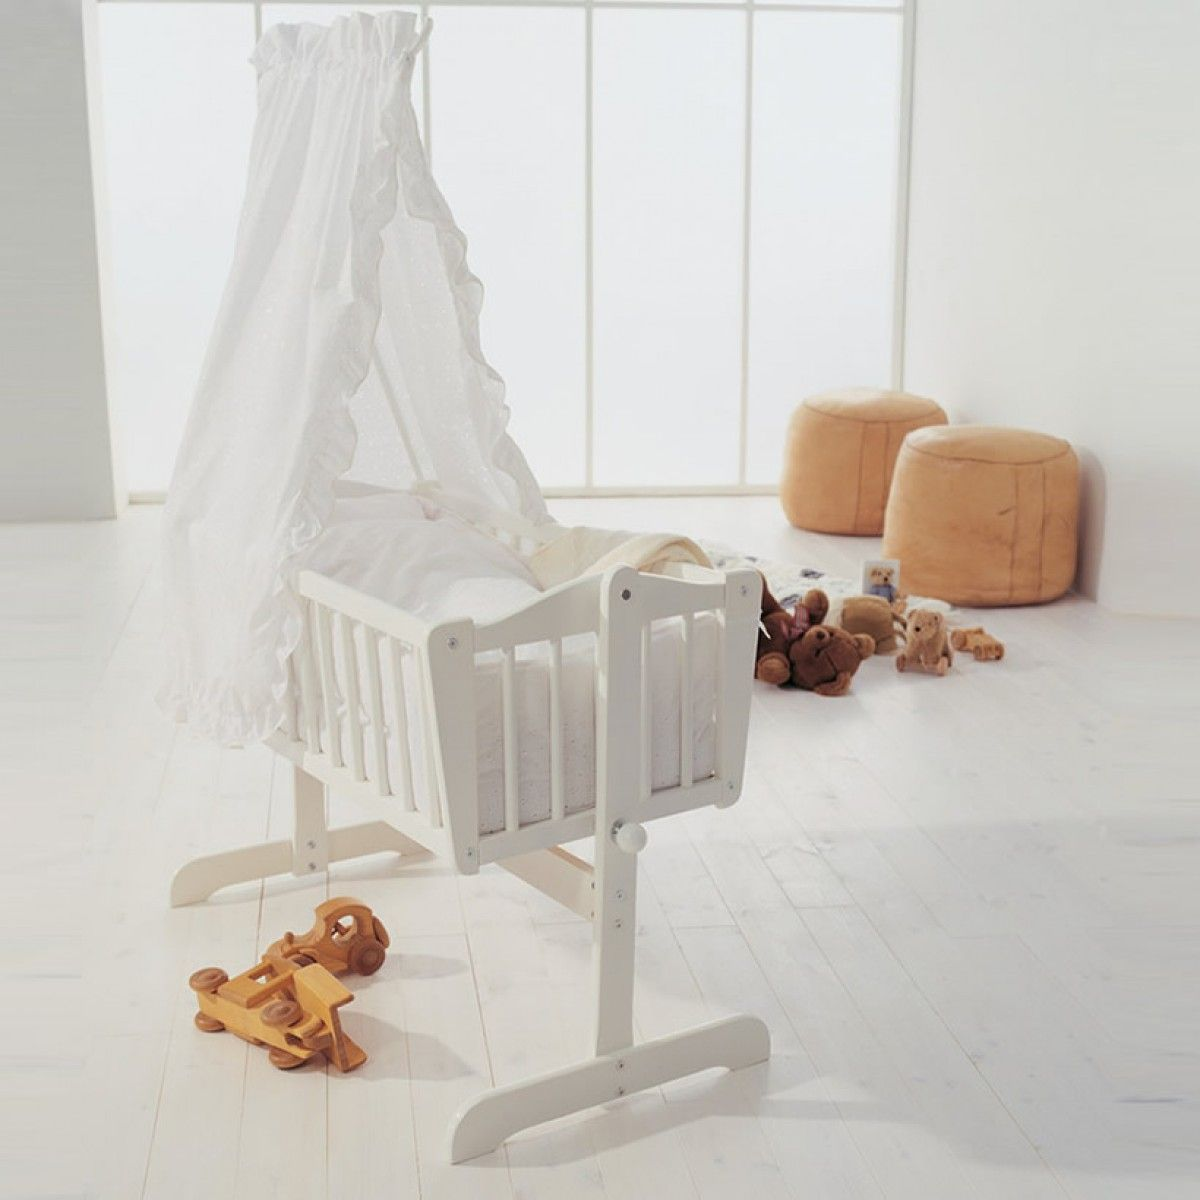 This beautiful babydan sofie white rocking crib is fit for any little prince or princess